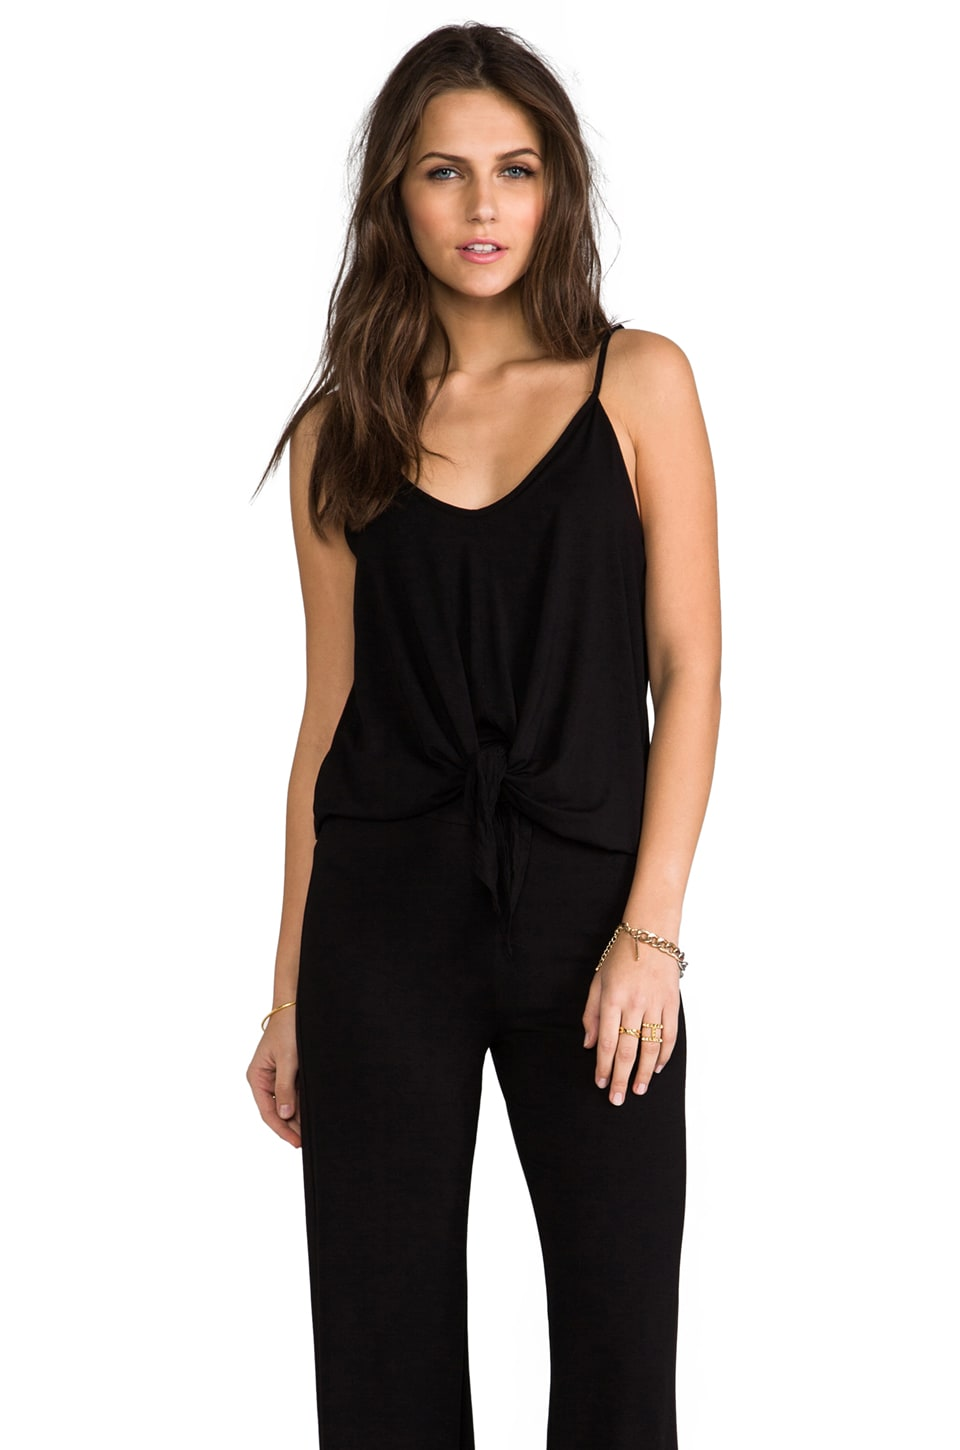 James & Joy Scarlet Tie Jumpsuit in Black